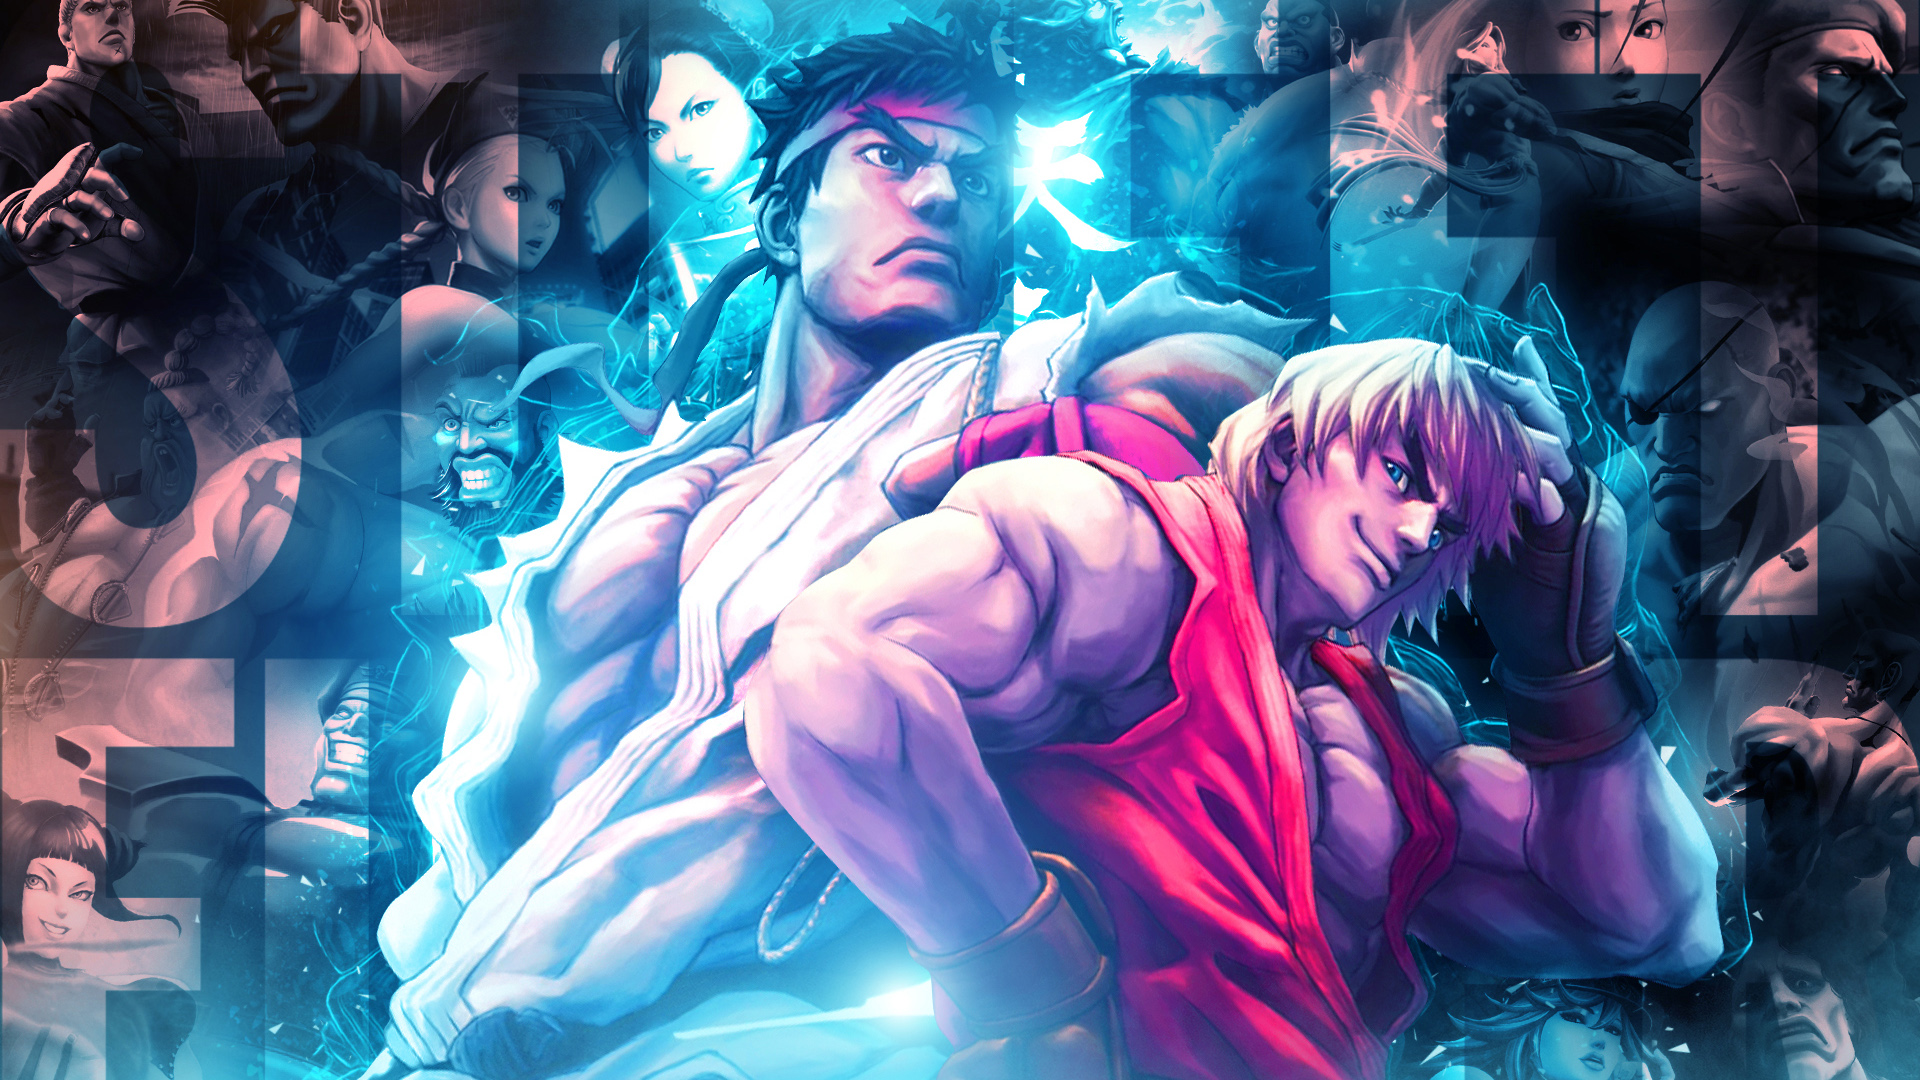 Street Fighter X Tekken 720p Wallpaper 1080p Wallpaper